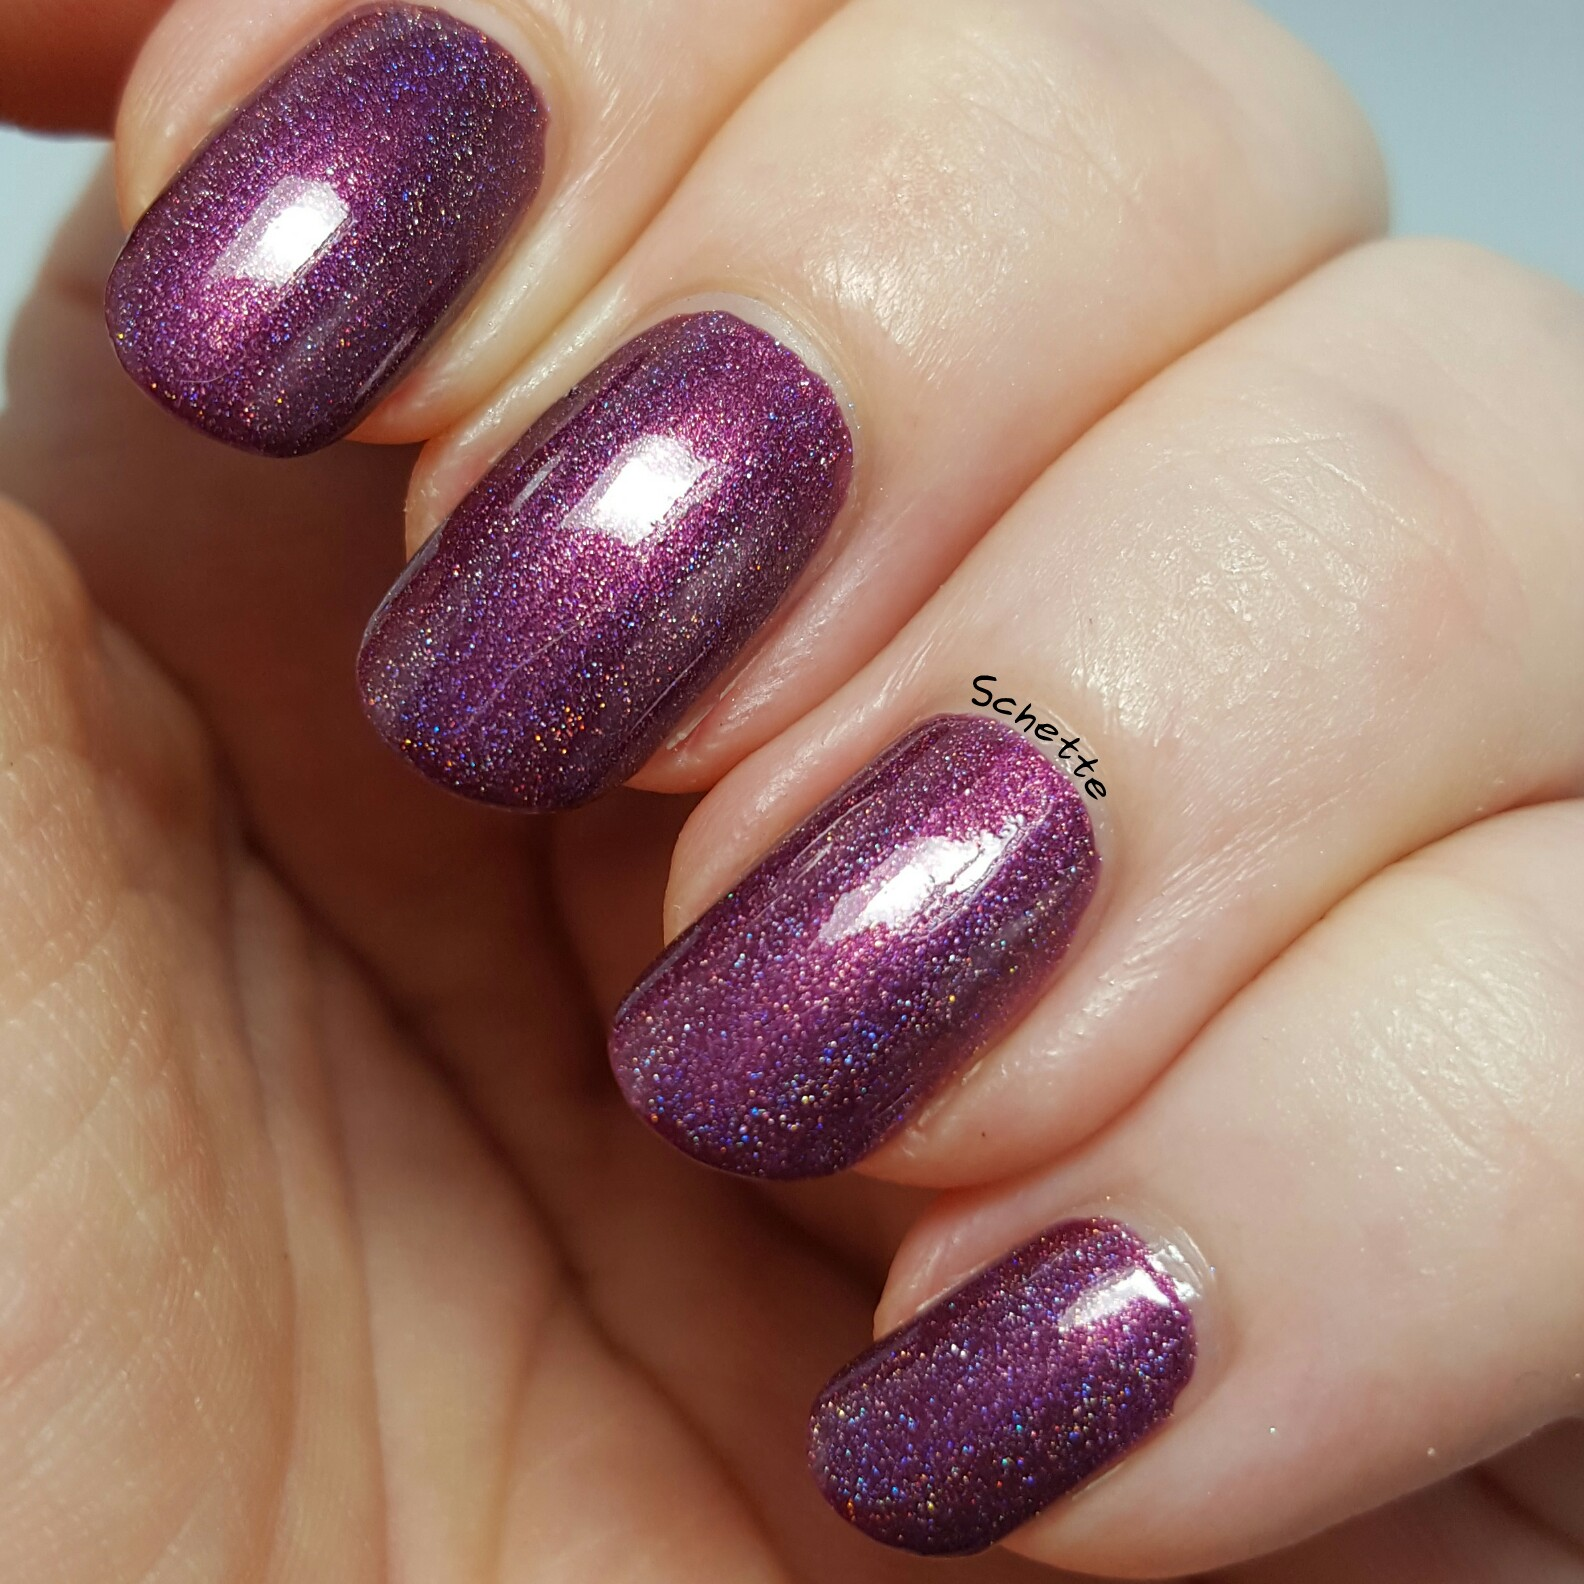 Vapid Lacquer - Blackened Amethyst